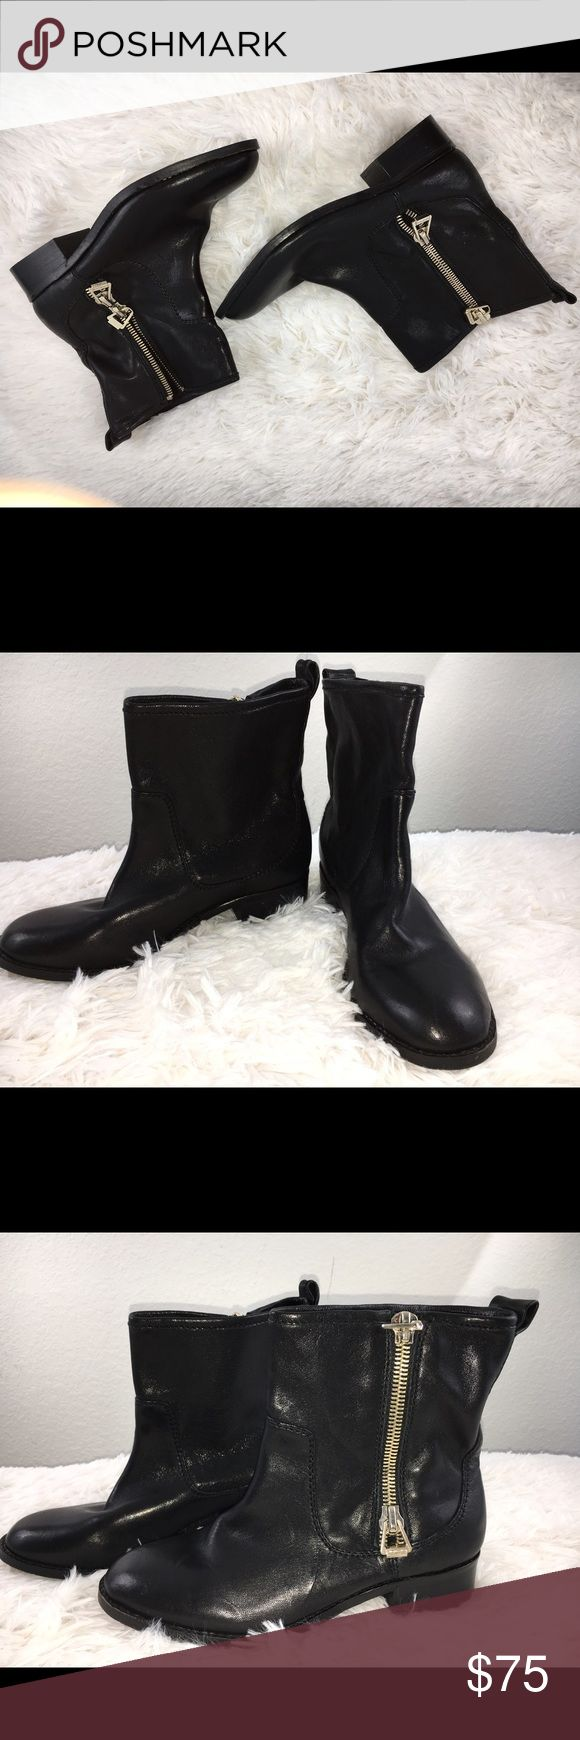 NEW Antonio Melani Ankle Boots NEW black leather Antonio Melani Ankle Boots w/flat heel, never worn, excellent condition ANTONIO MELANI Shoes Ankle Boots & Booties